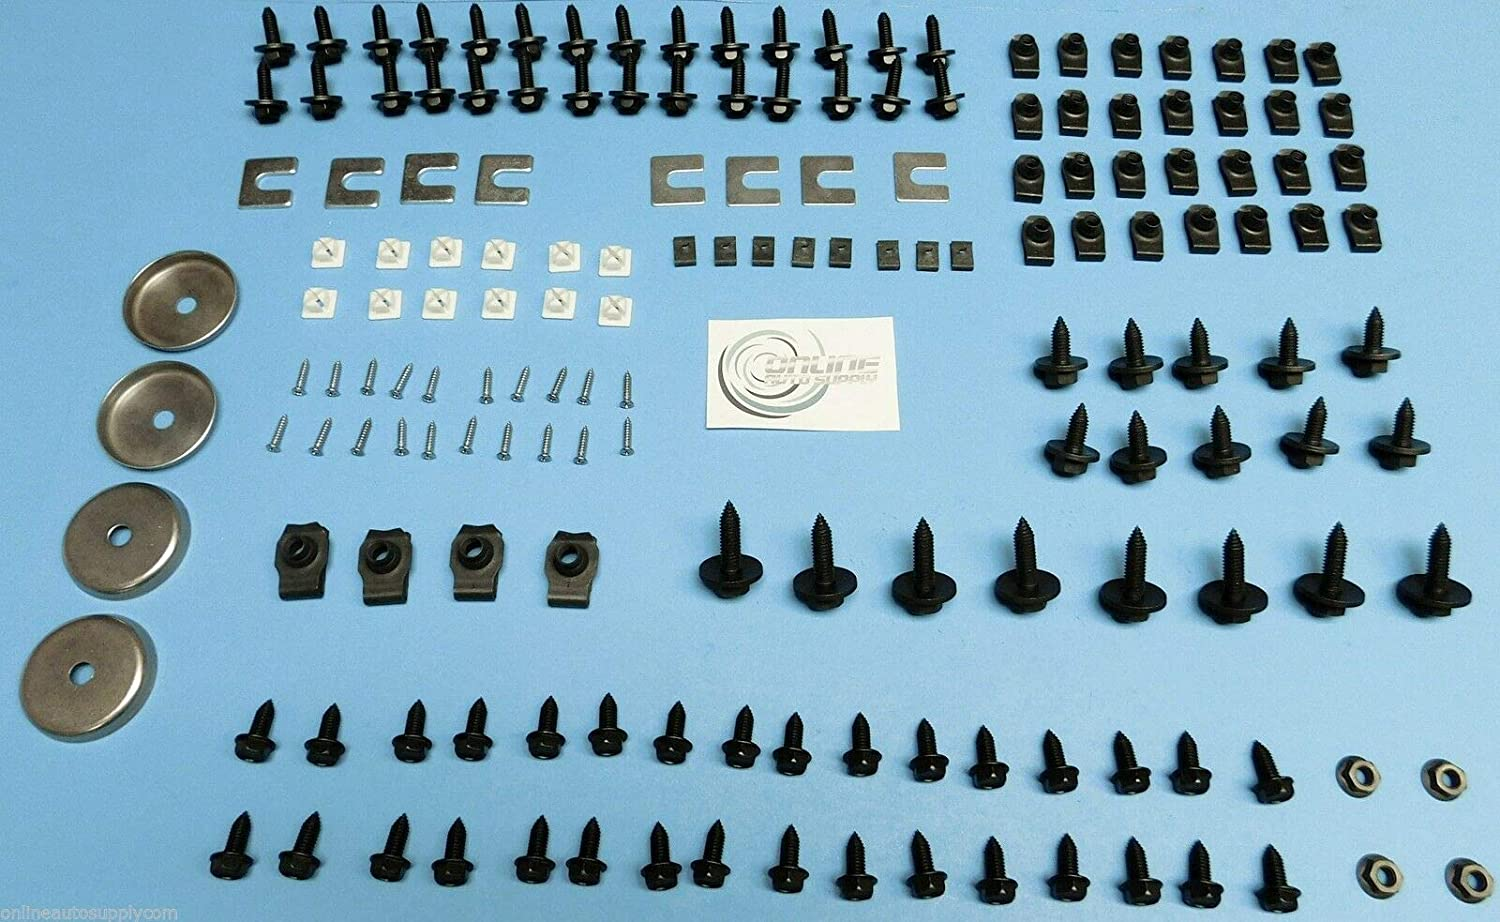 Online Auto Supply Front End Sheet Metal Hardware 166pc Kit Fits 68 69 70 71 72 Chevelle El Camino Bolts